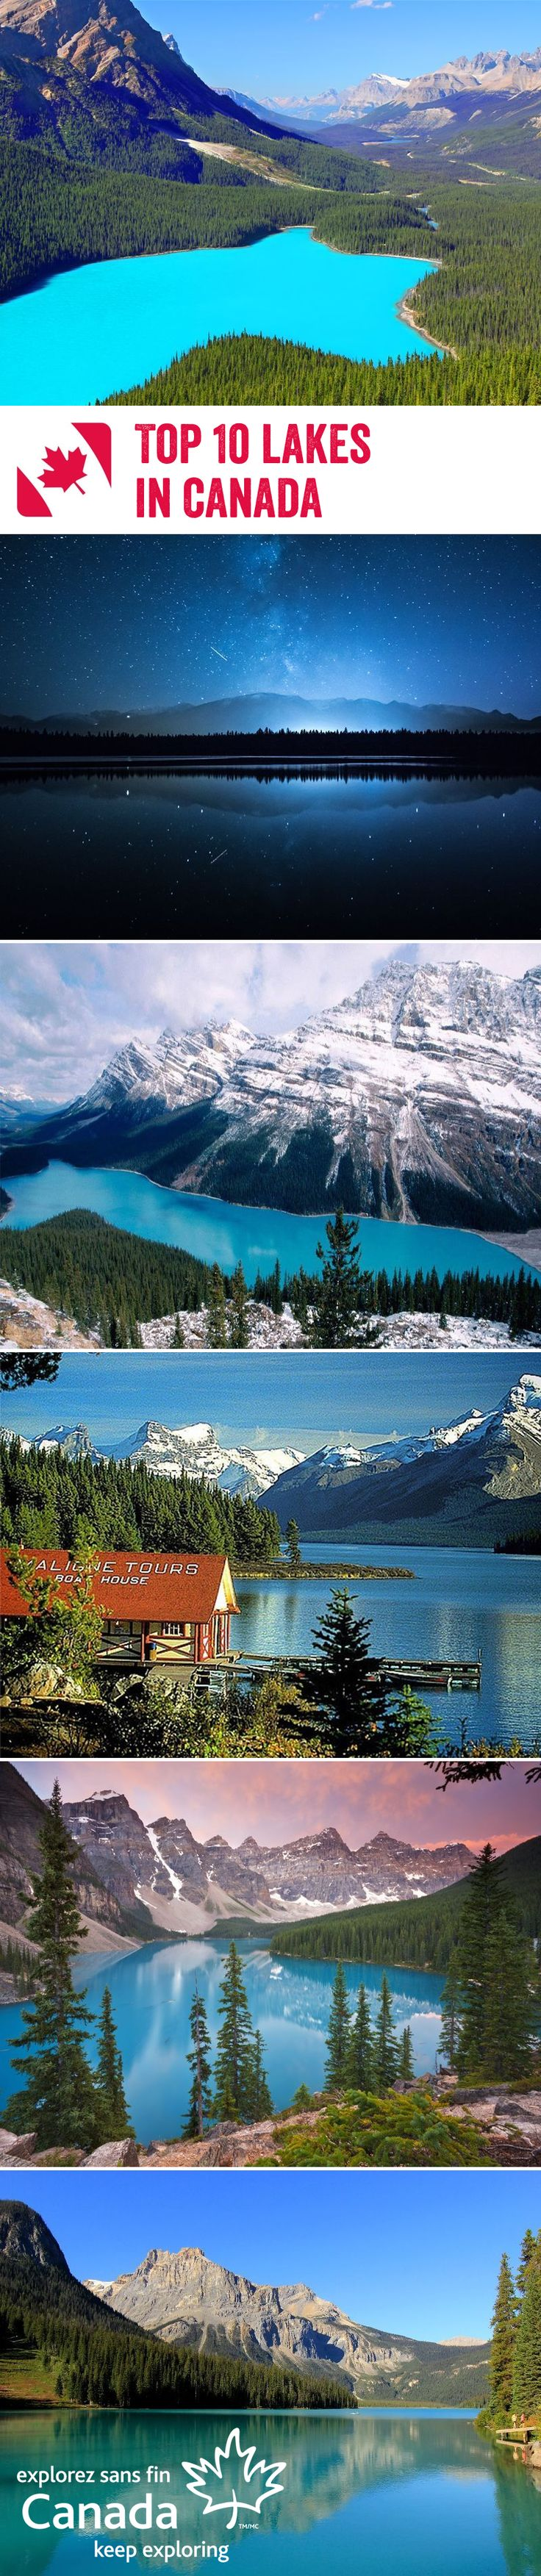 Canada is filled with picture-perfect lakes - a true testimont of the natural beauty that graces this stunning country. We've picked our top 10 lakes in Canada that will take your breath away, from Lake Louise, to Spotted Lake